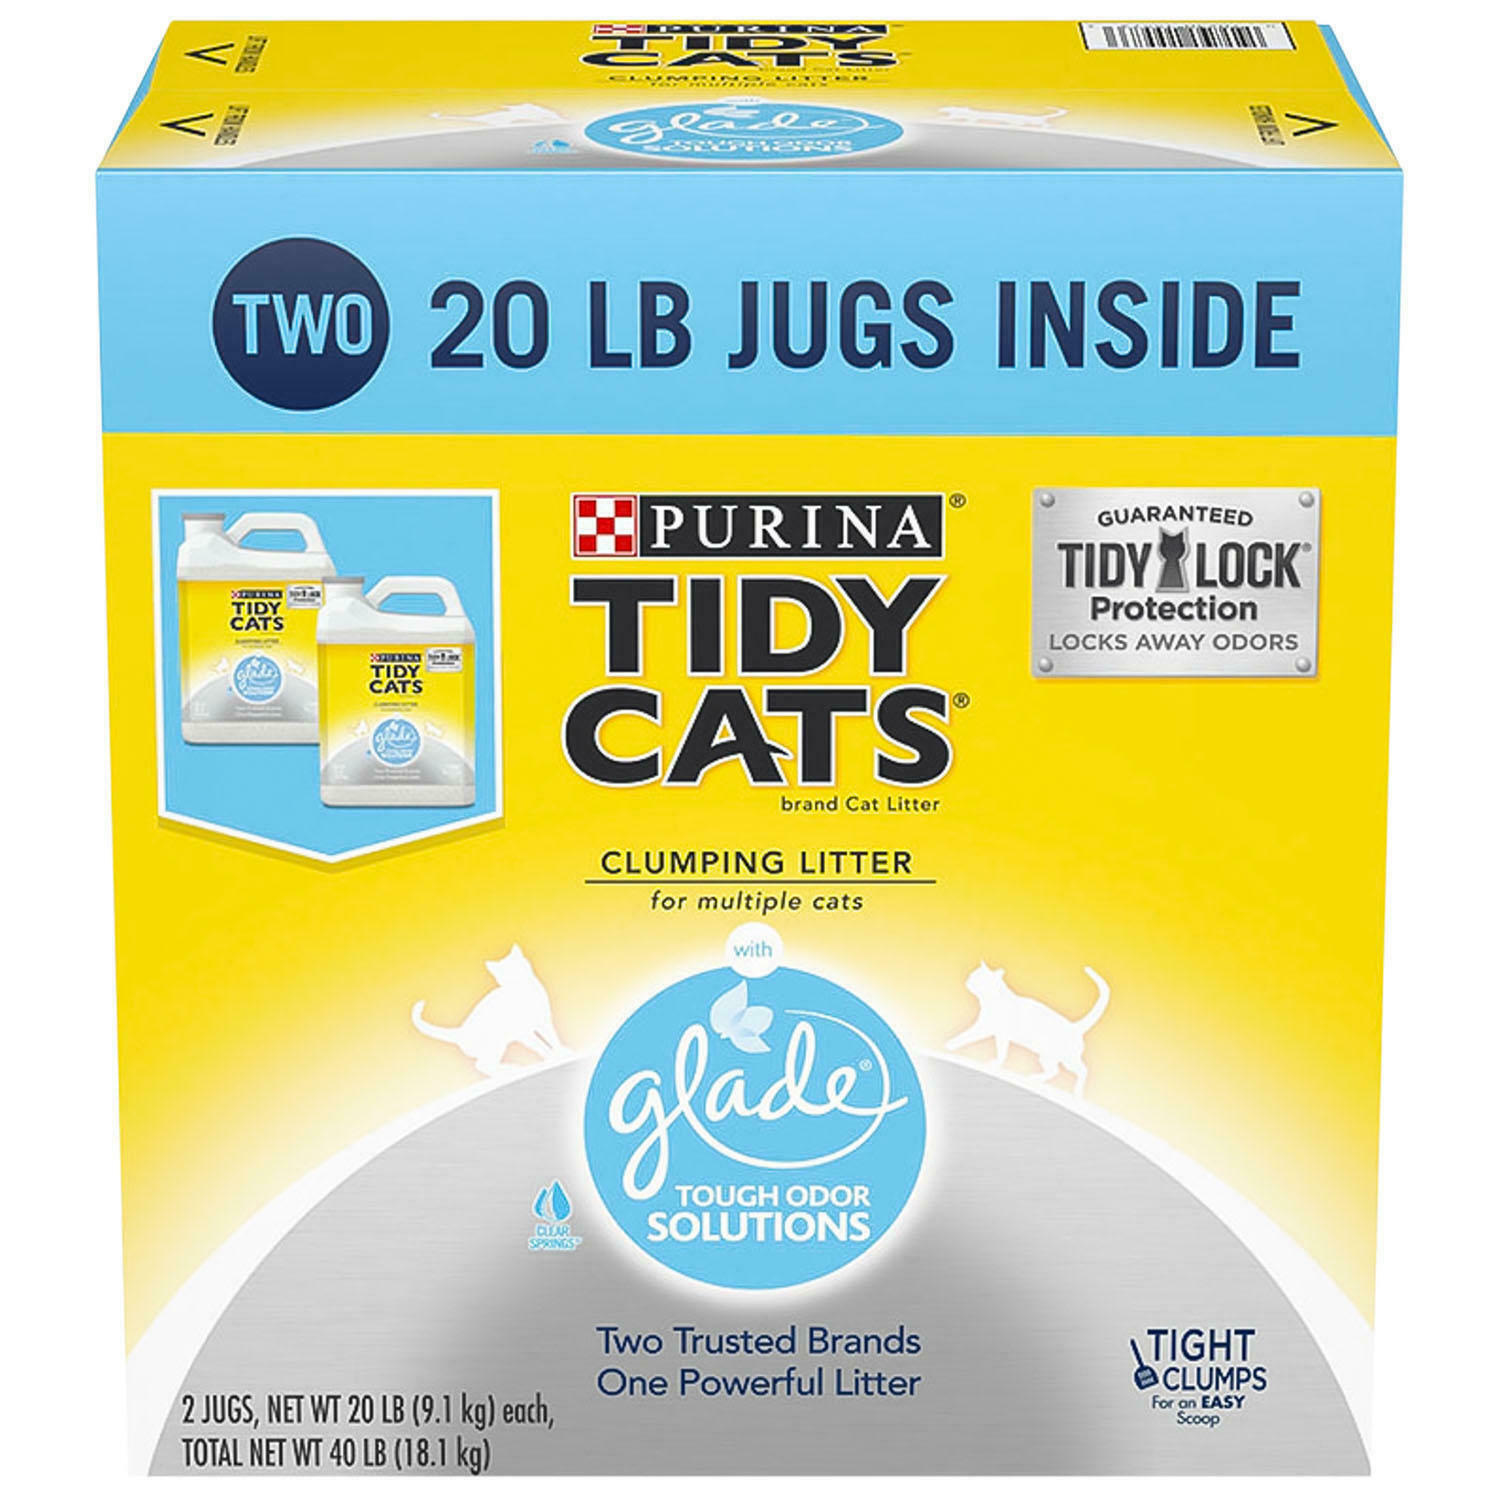 Purina Tidy Cats Clumping Litter with Glade Twin Odor Solution Pack (20 lb.) - $32.74